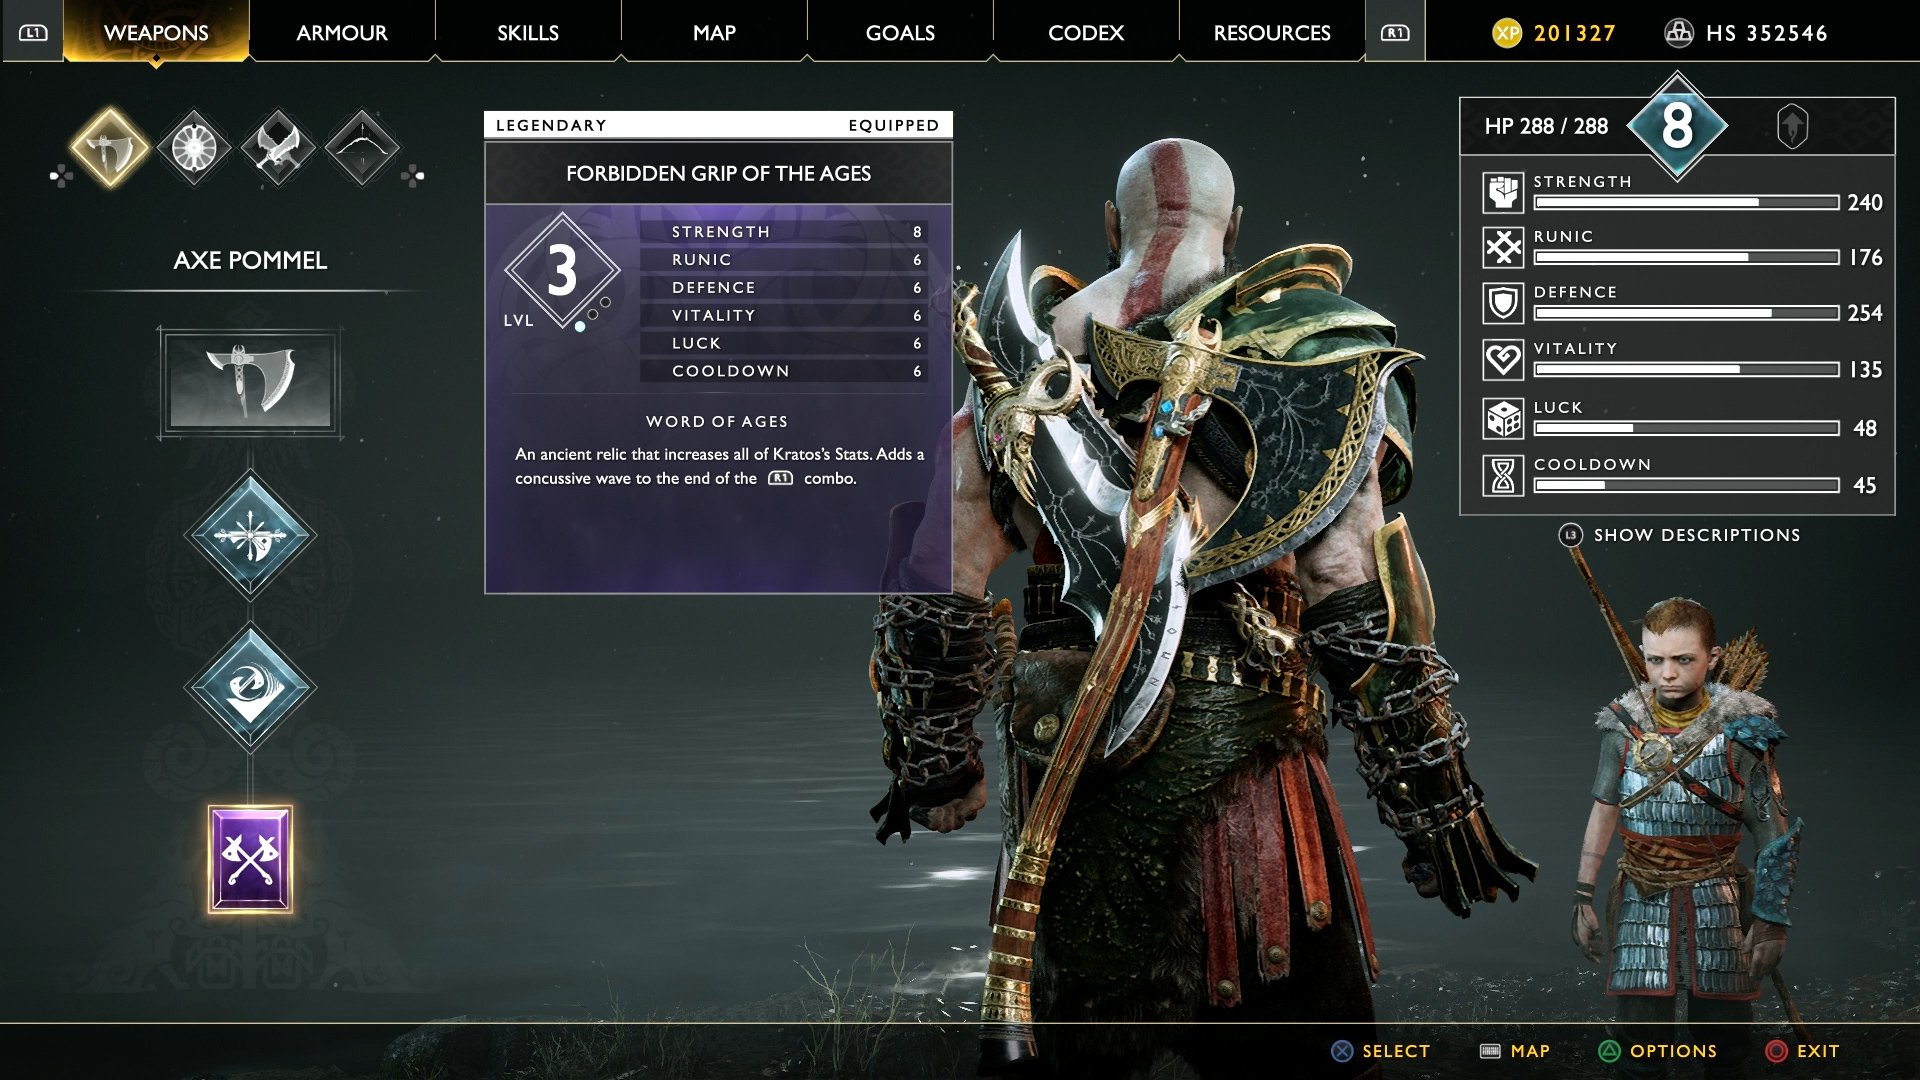 god of war forbidden grip of the ages